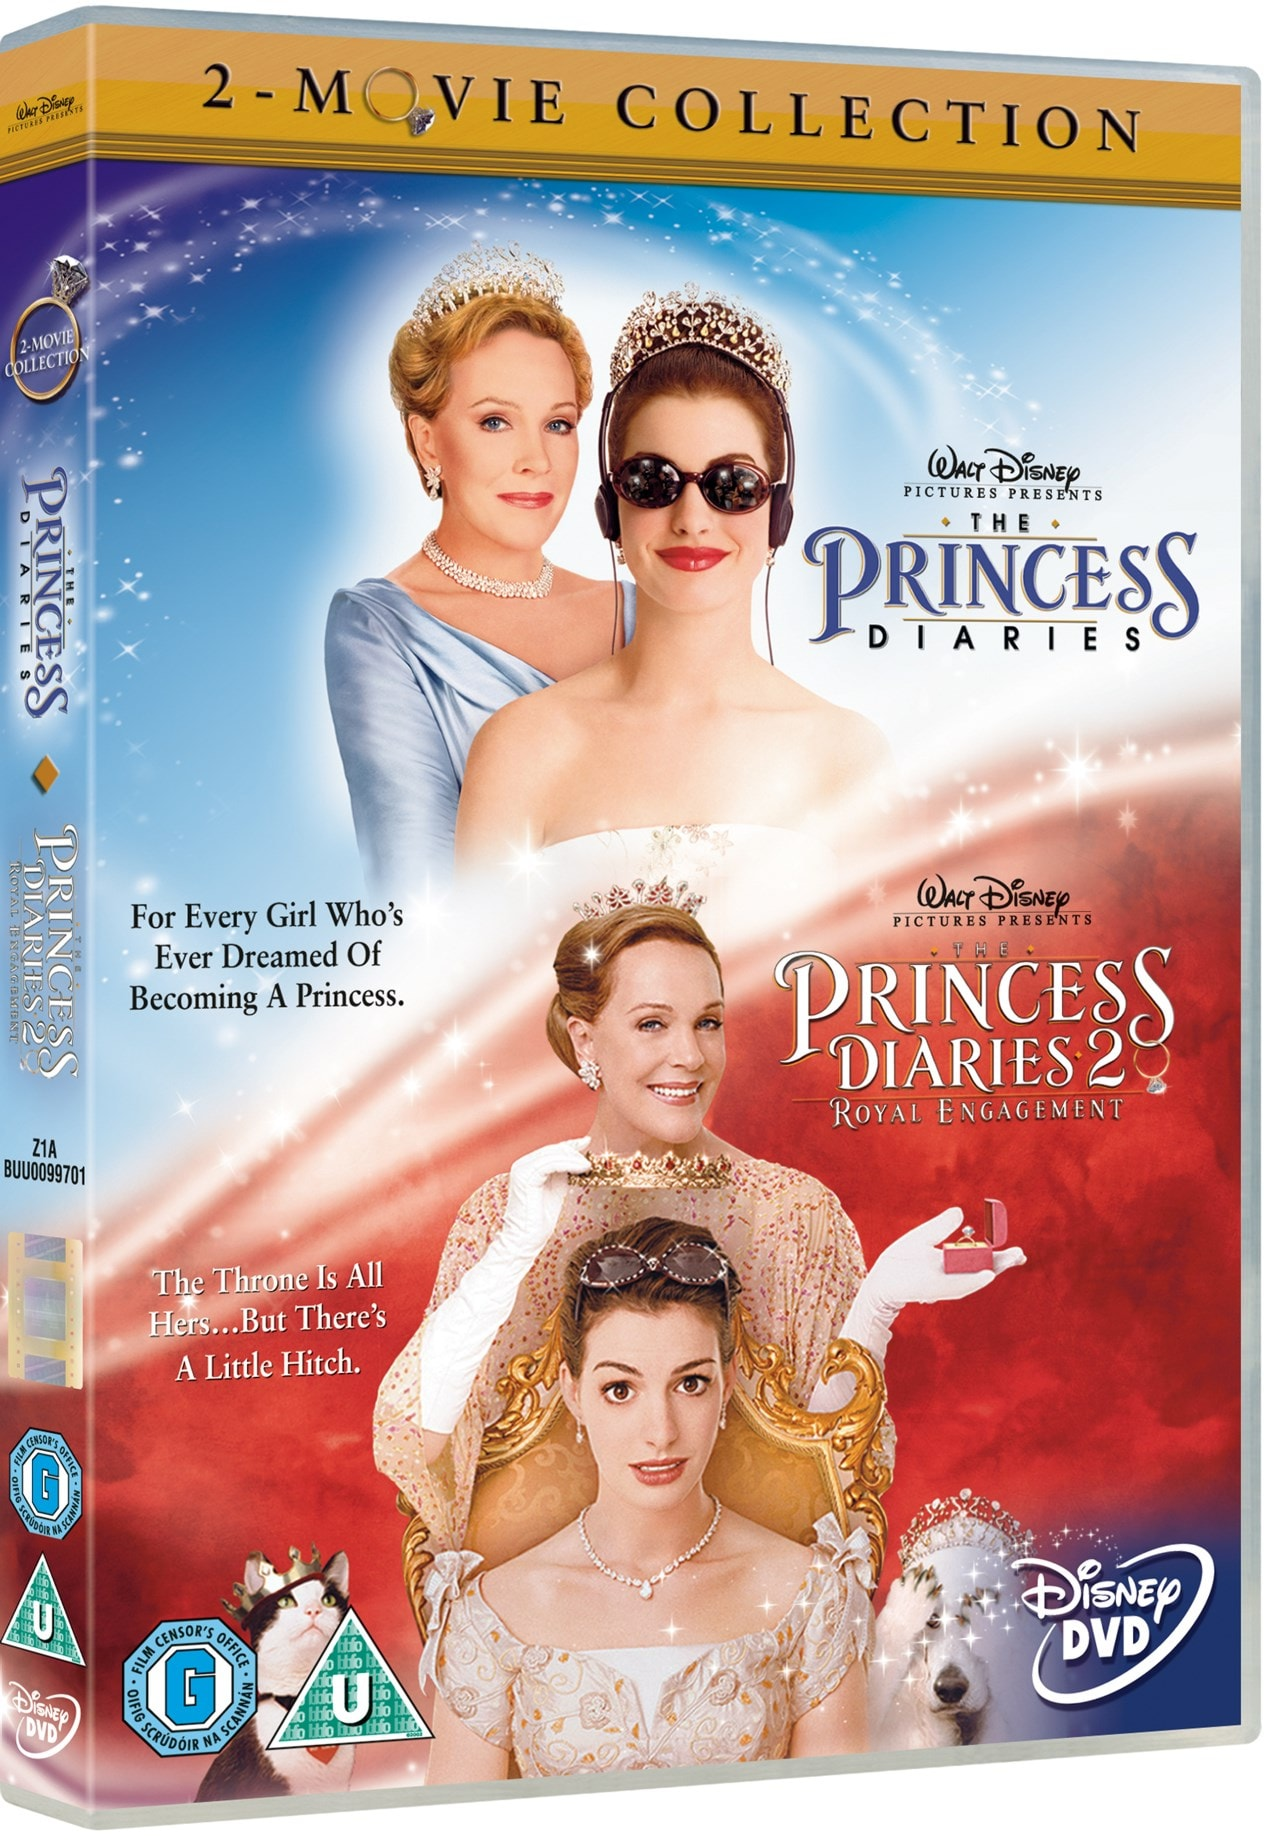 The Princess Diaries/Princess Diaries 2 - Royal Engagement - 2